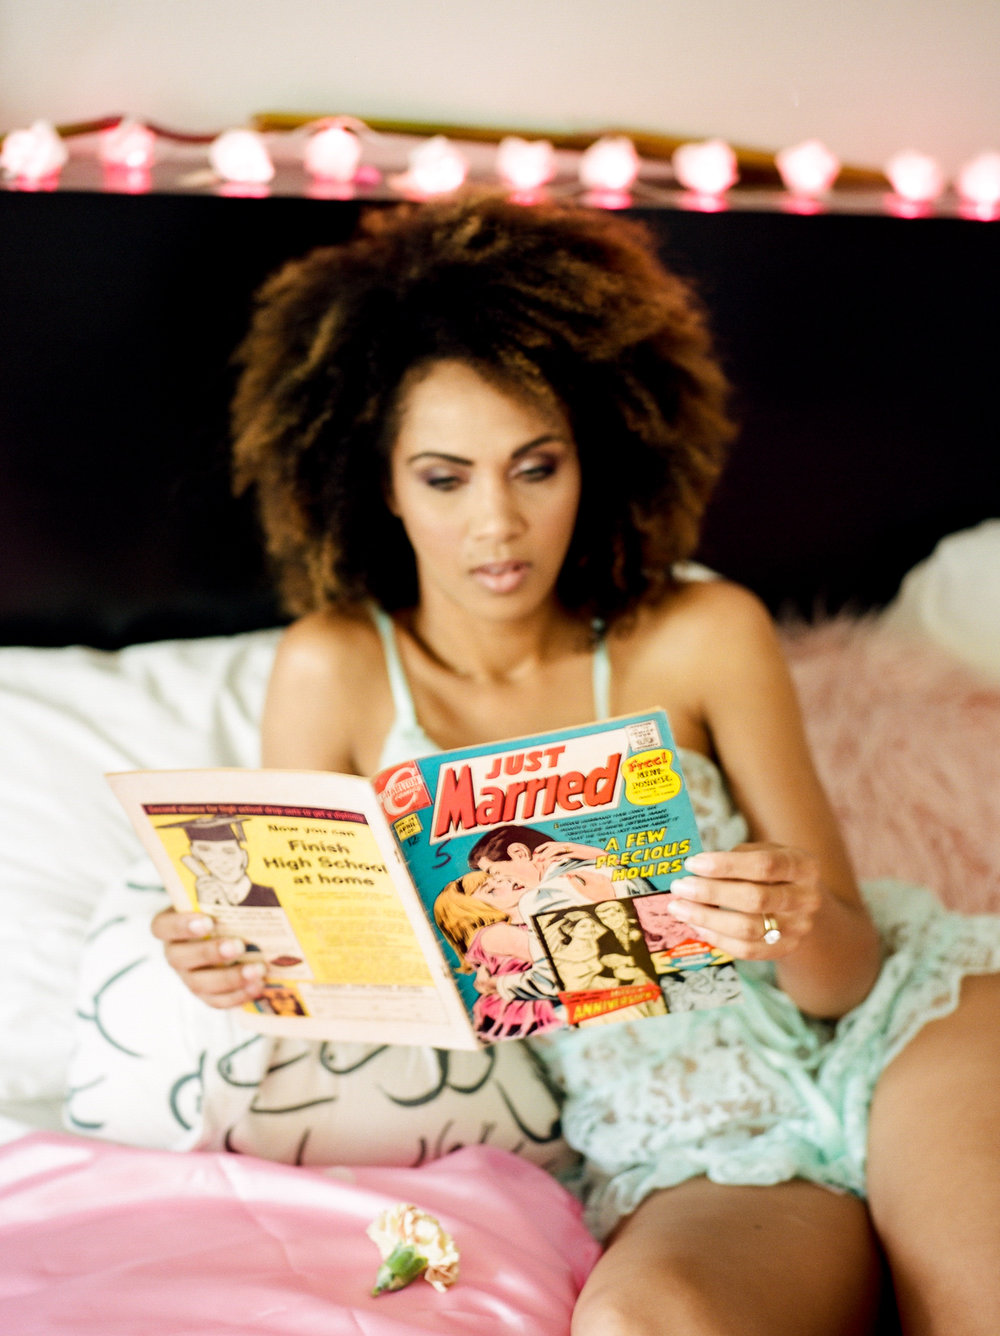 Feminist Photo Vacay Boudoir by Jessica Schilling